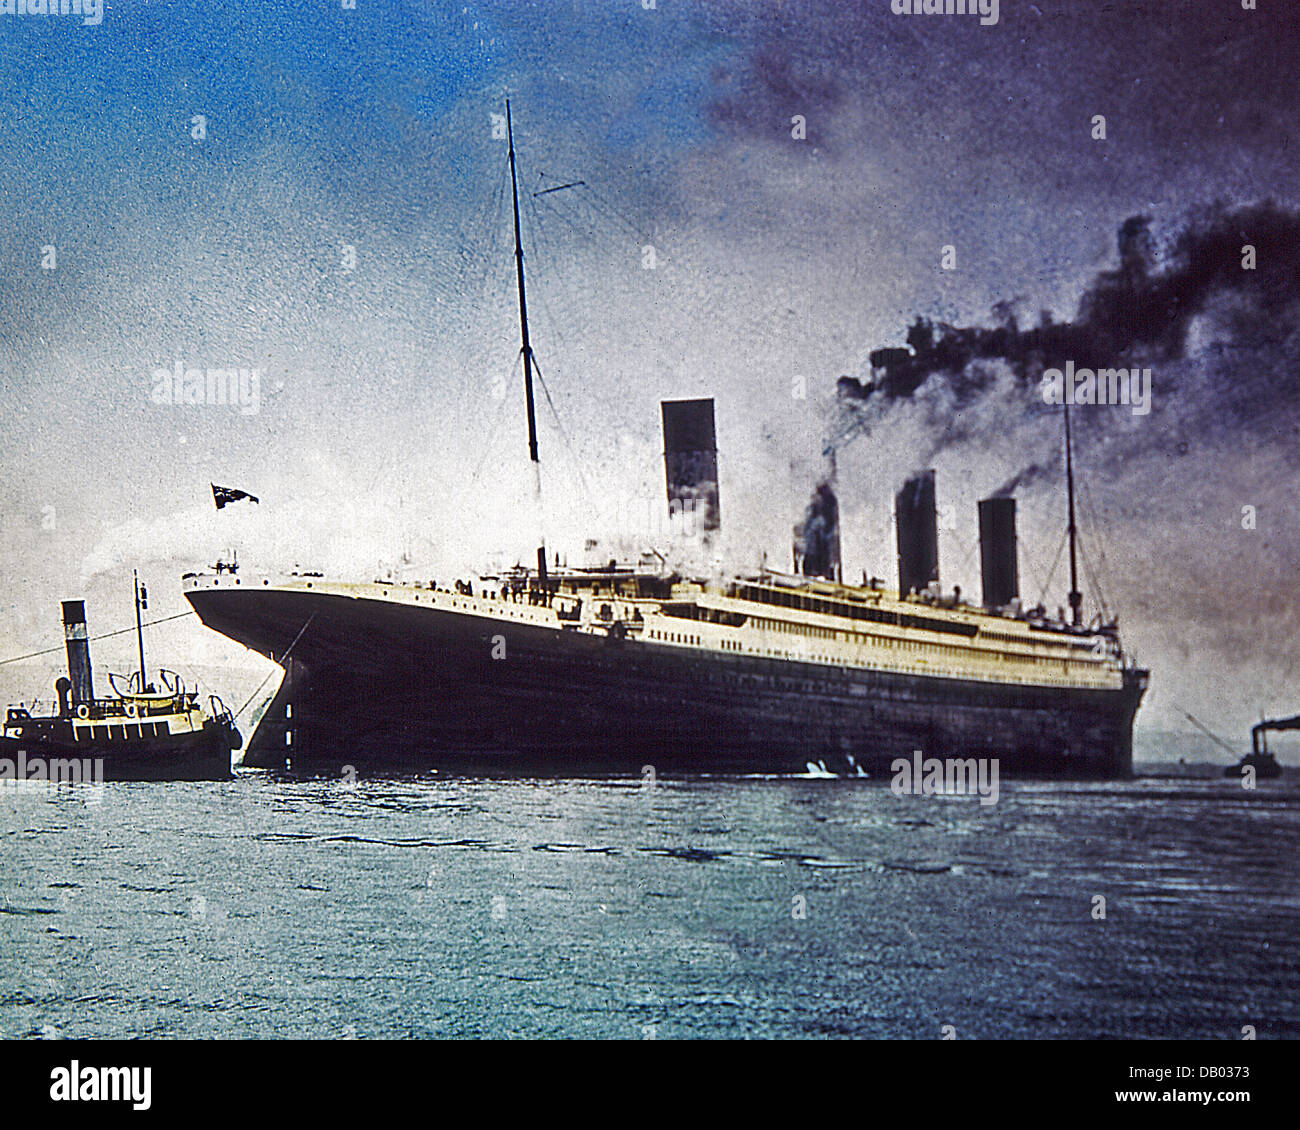 Photo Du Titanic: The Titanic Photos & The Titanic Images